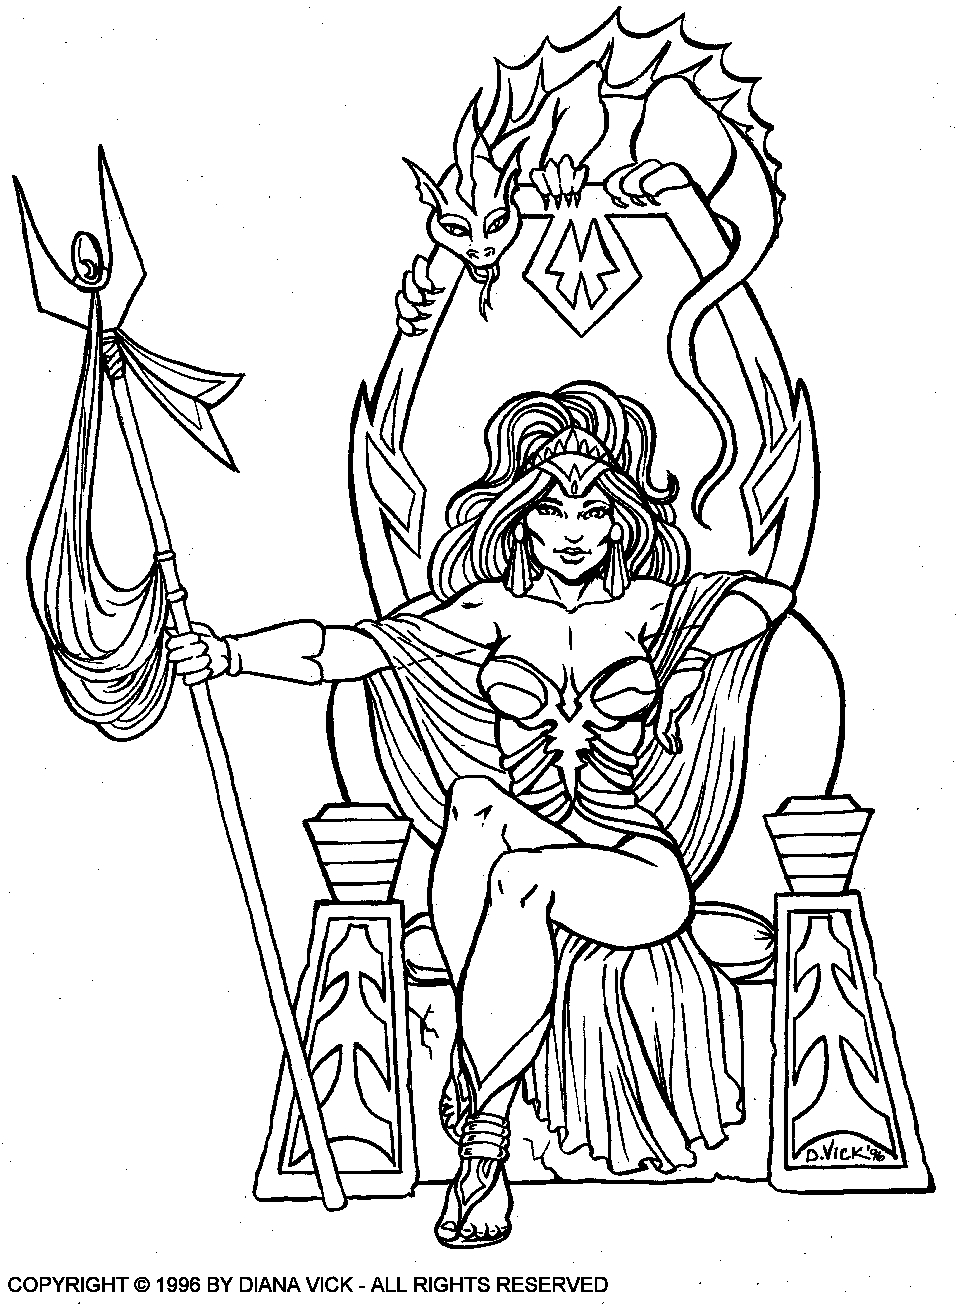 medieval dragon coloring pages - pin medieval themed coloring pages kings queens princesses